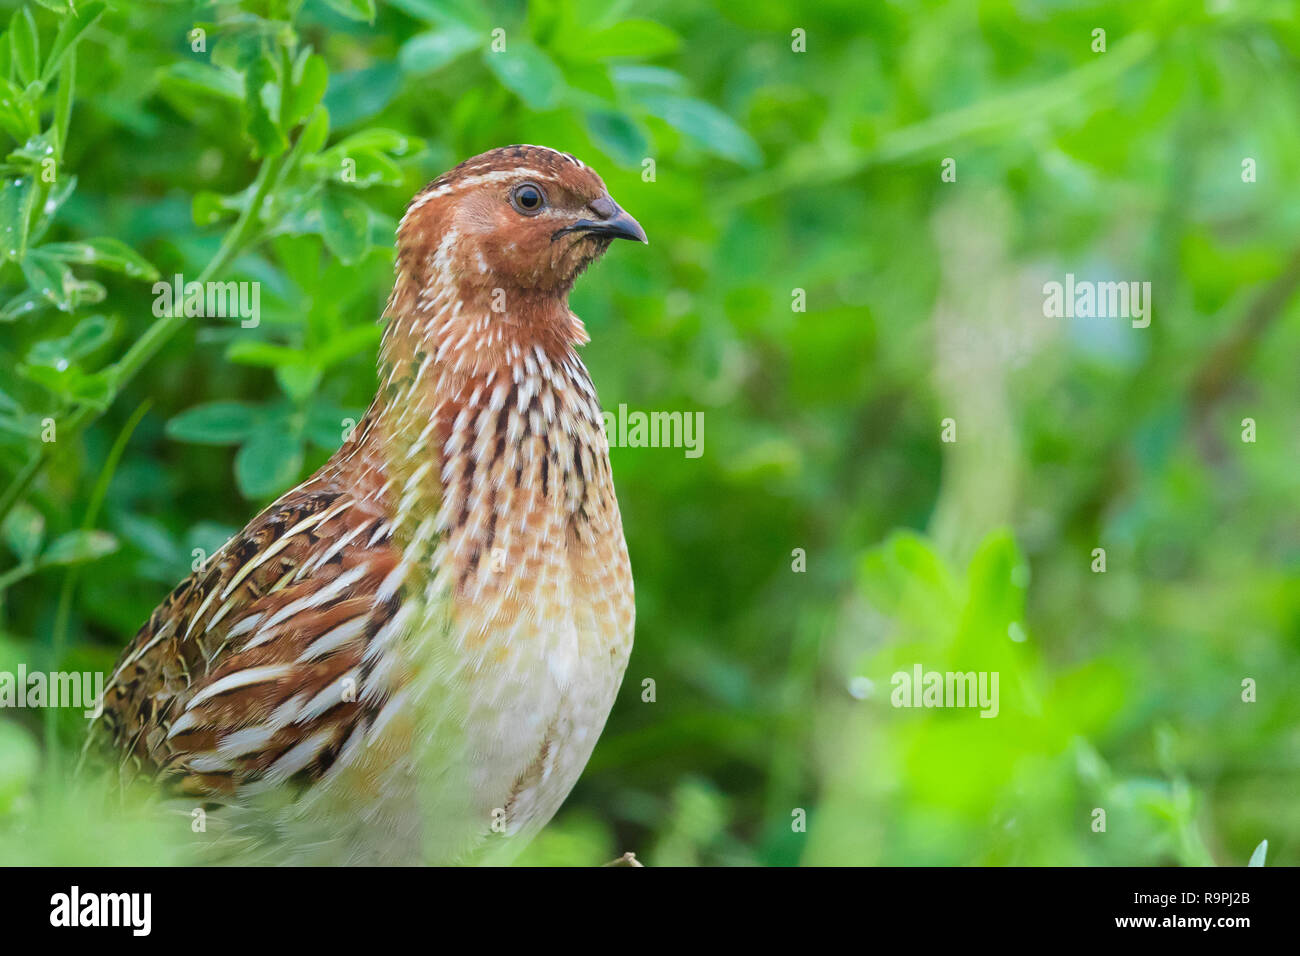 Common Quail (Coturnix coturnix), close-up of a male standing in an Alfalfa field - Stock Image